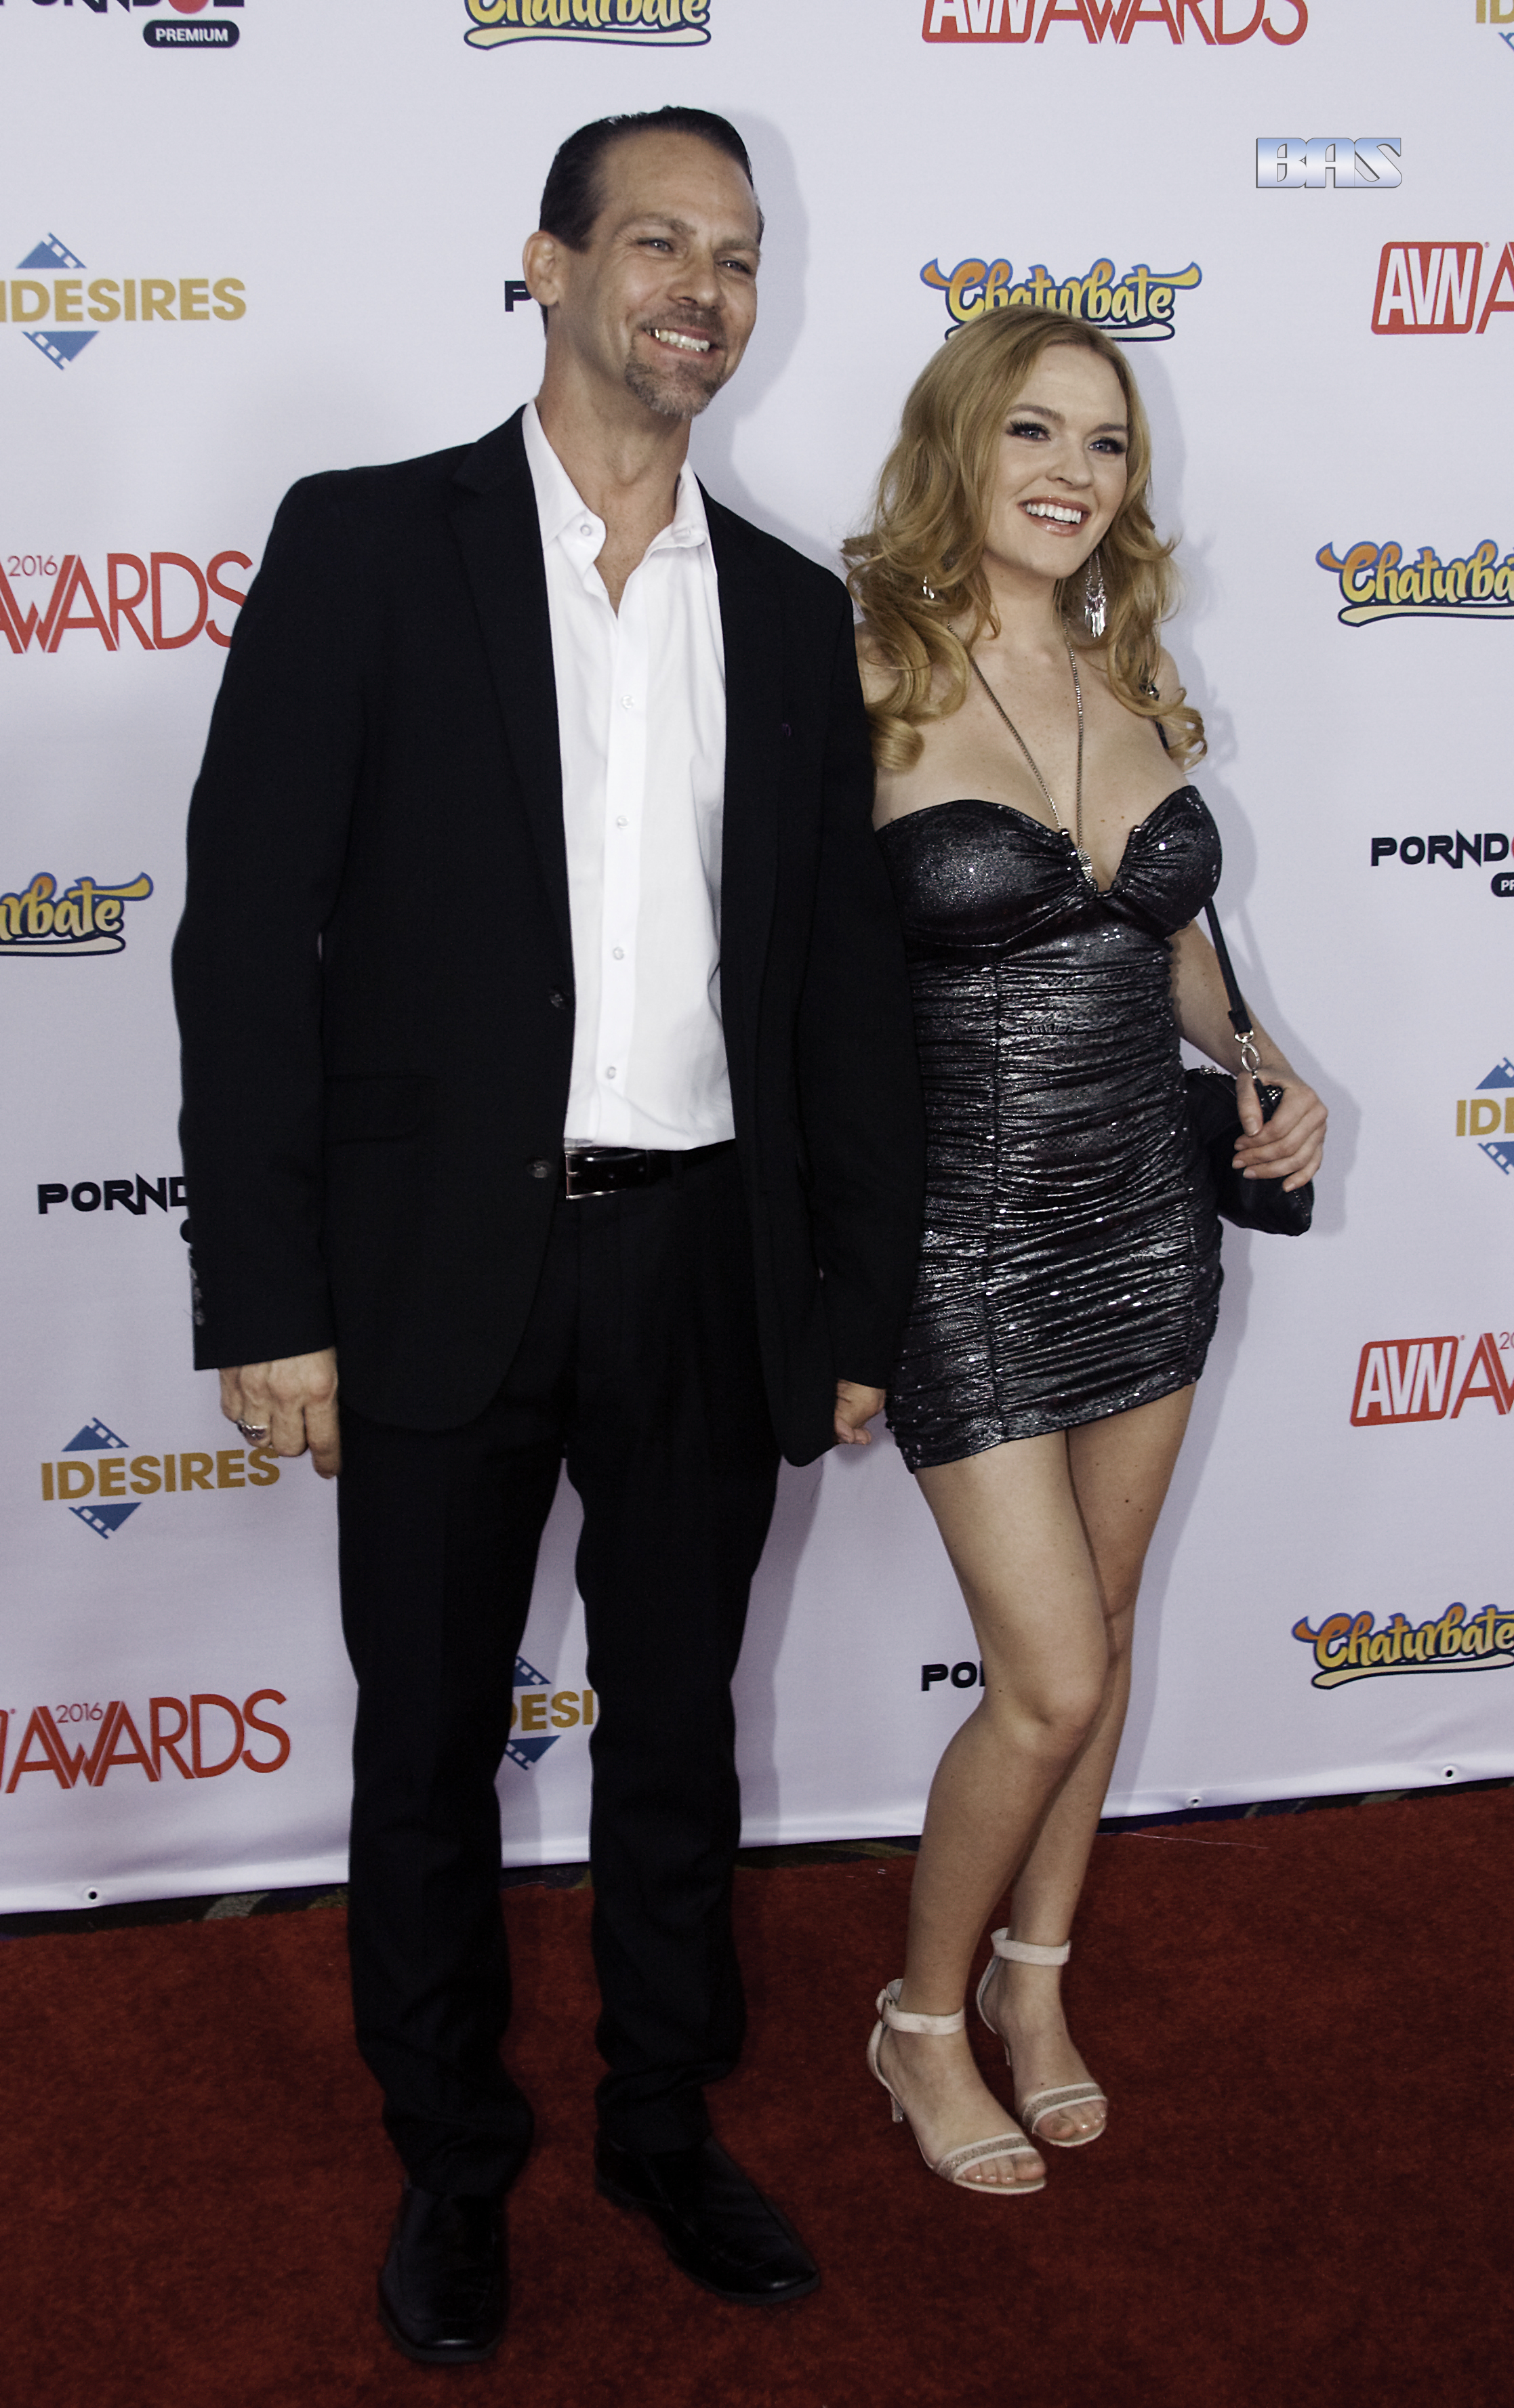 Filefilthy Rich And Krissy Lynn At Avn Awards 2016 26067909713 Jpg